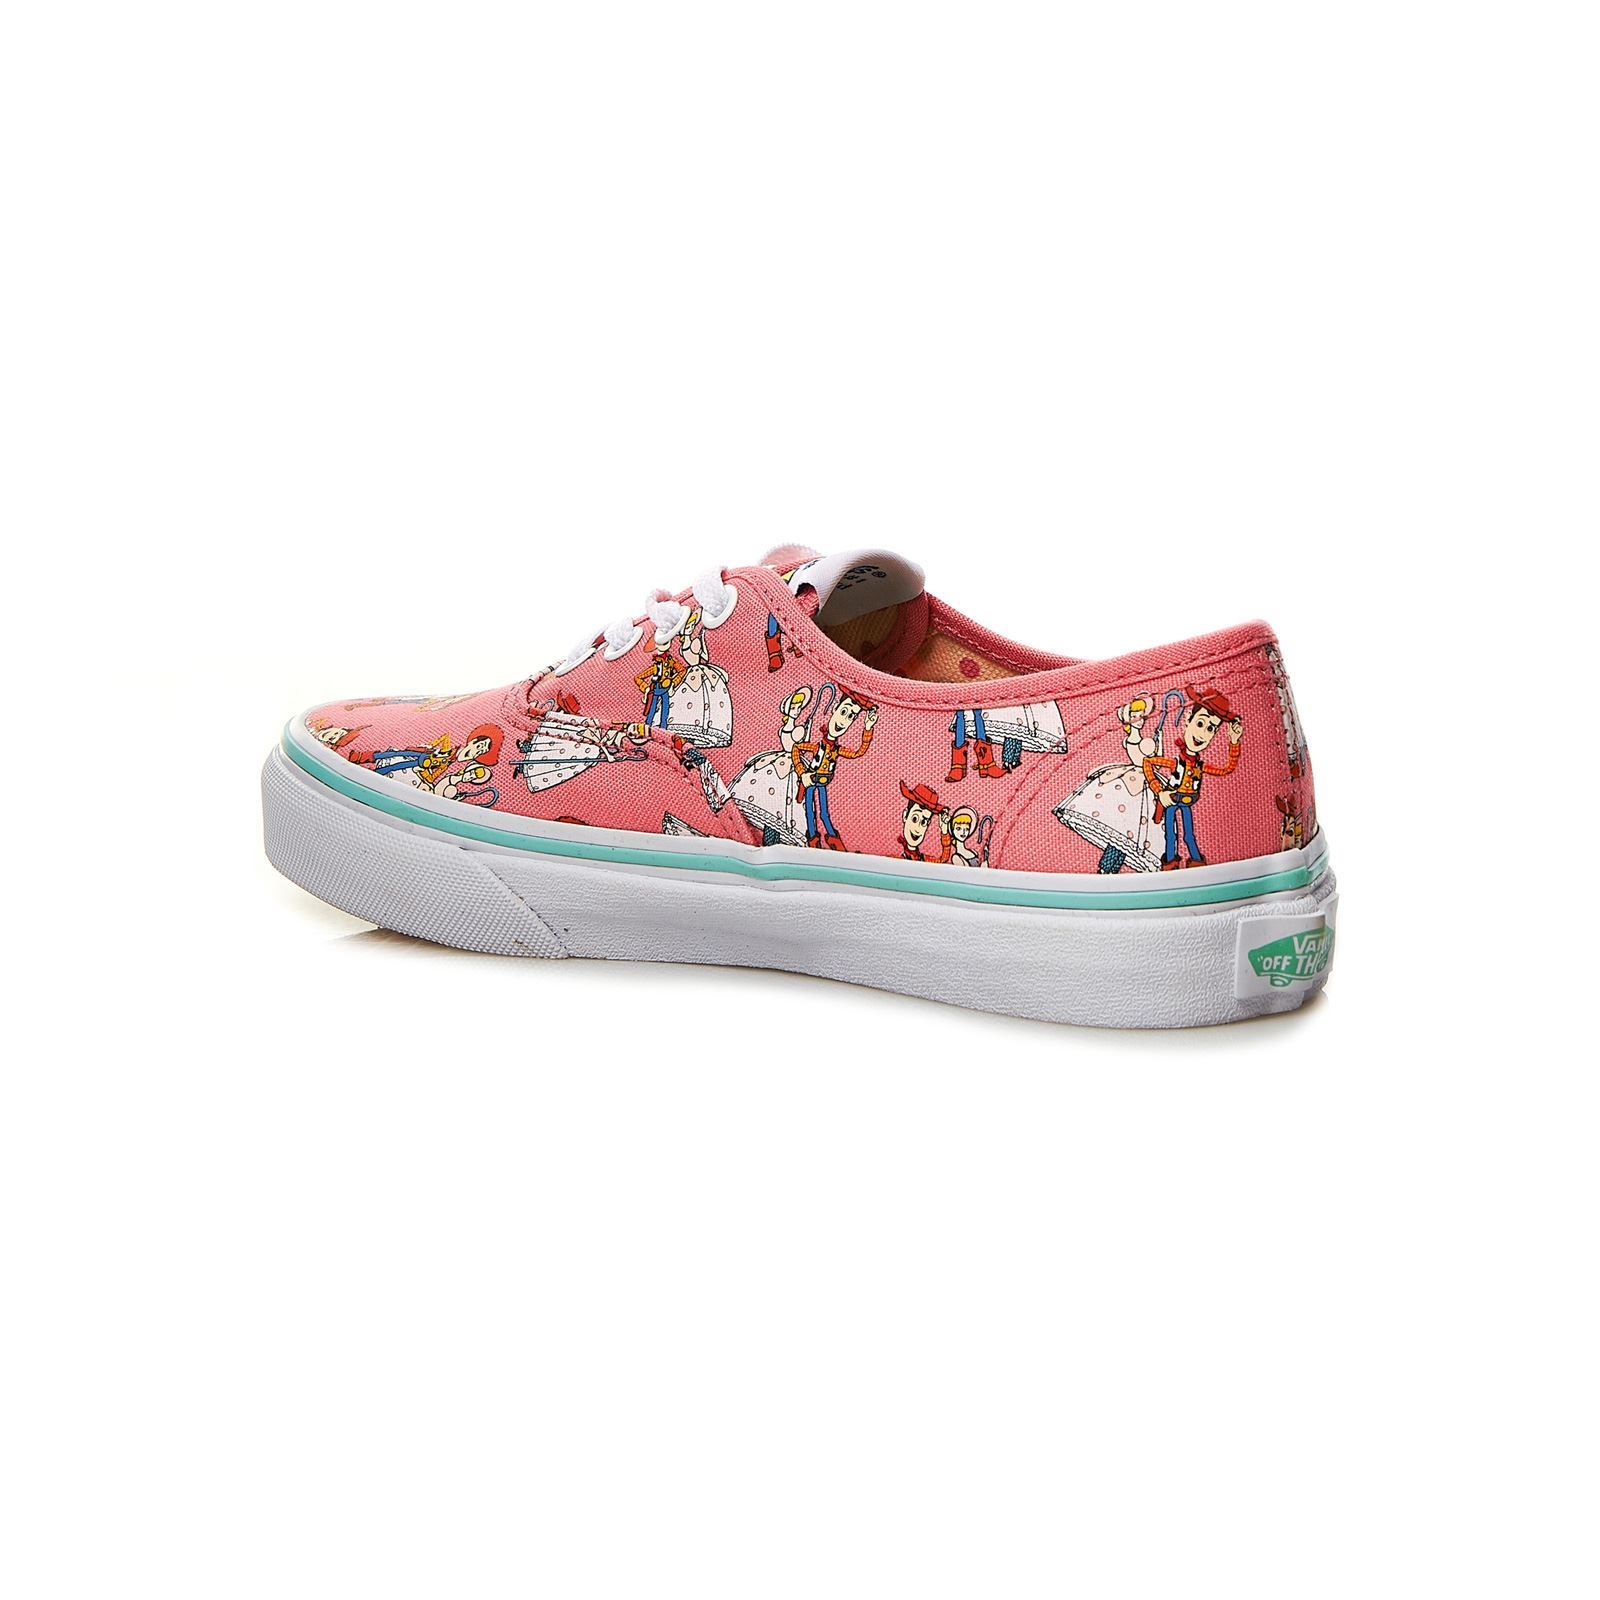 Vans Toy Story Slip On beige